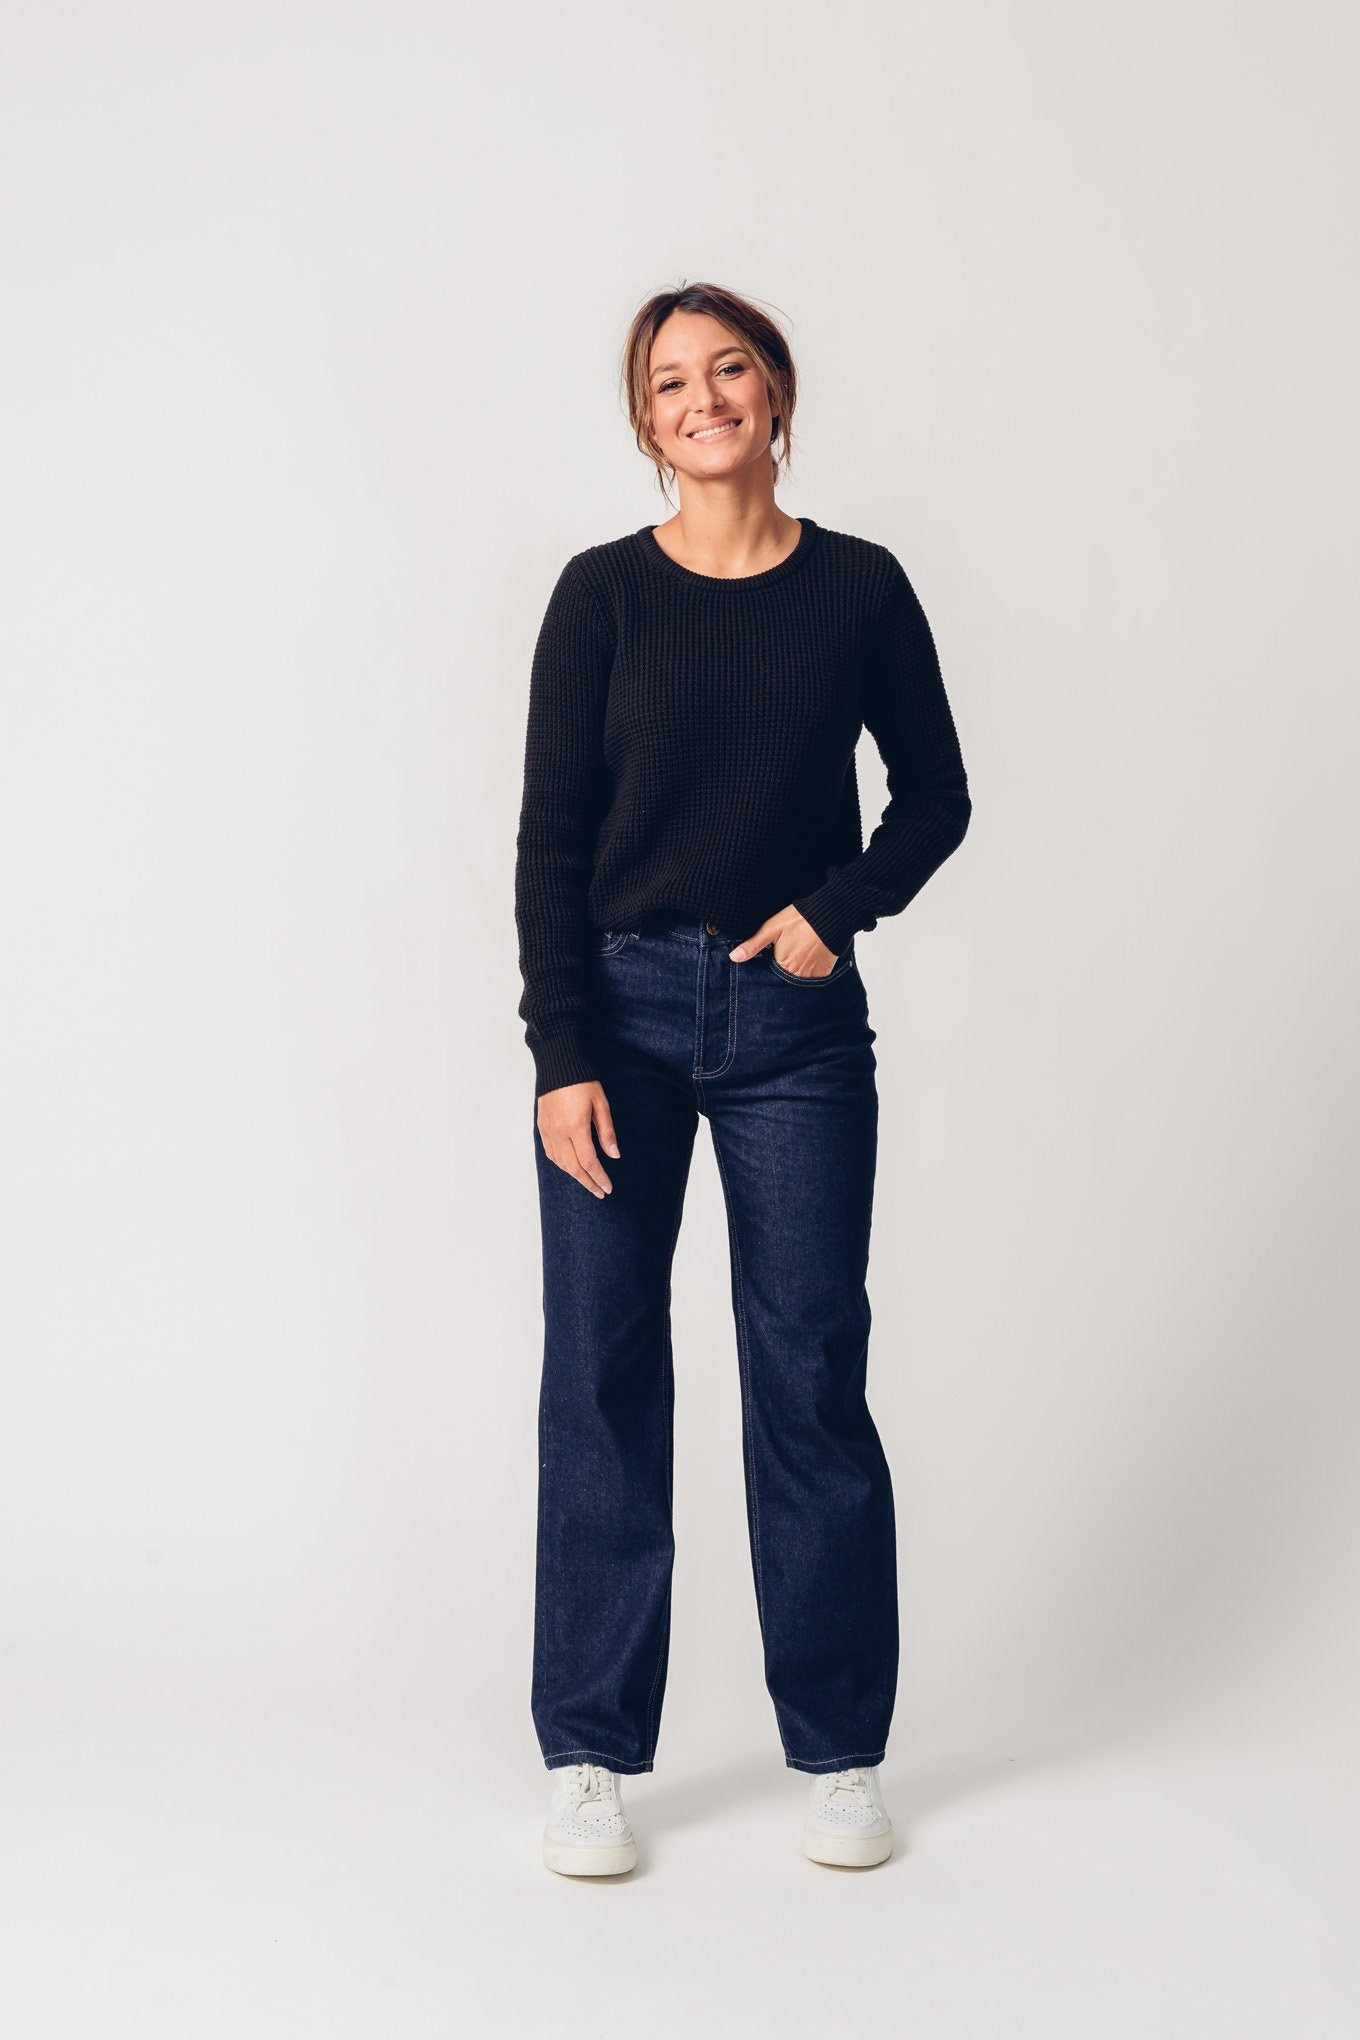 MAYA rinse organic cotton Jeans by UCM - Komodo Fashion